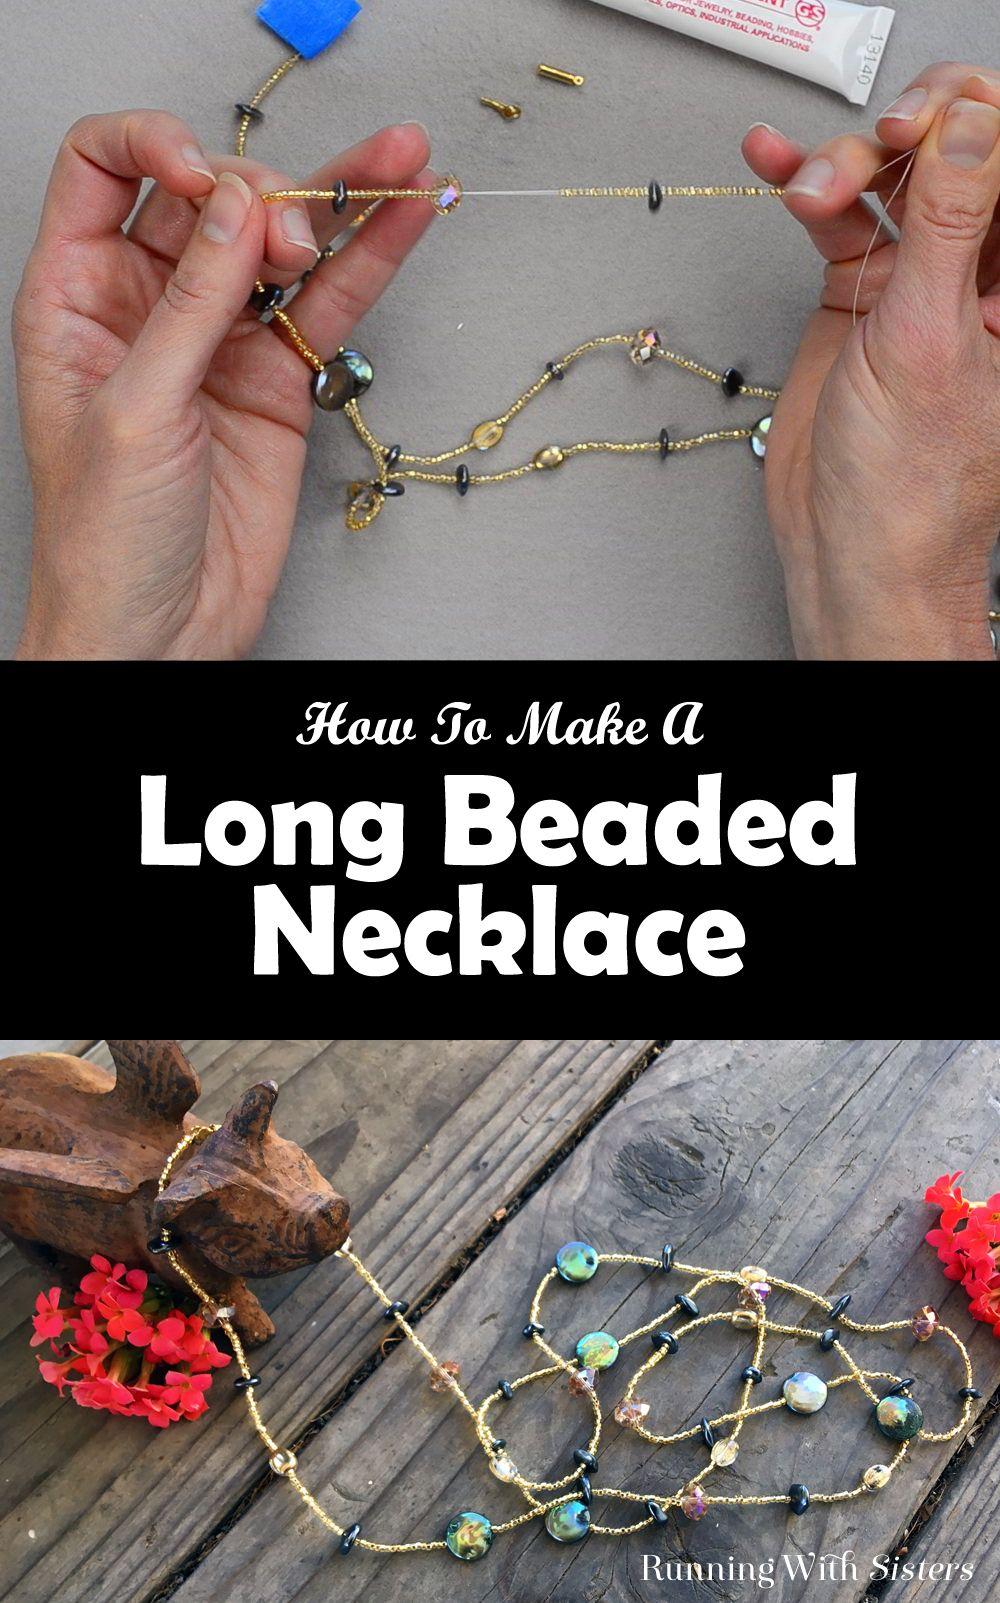 How To Make A Long Beaded Necklace | Beaded Jewelry, Diy